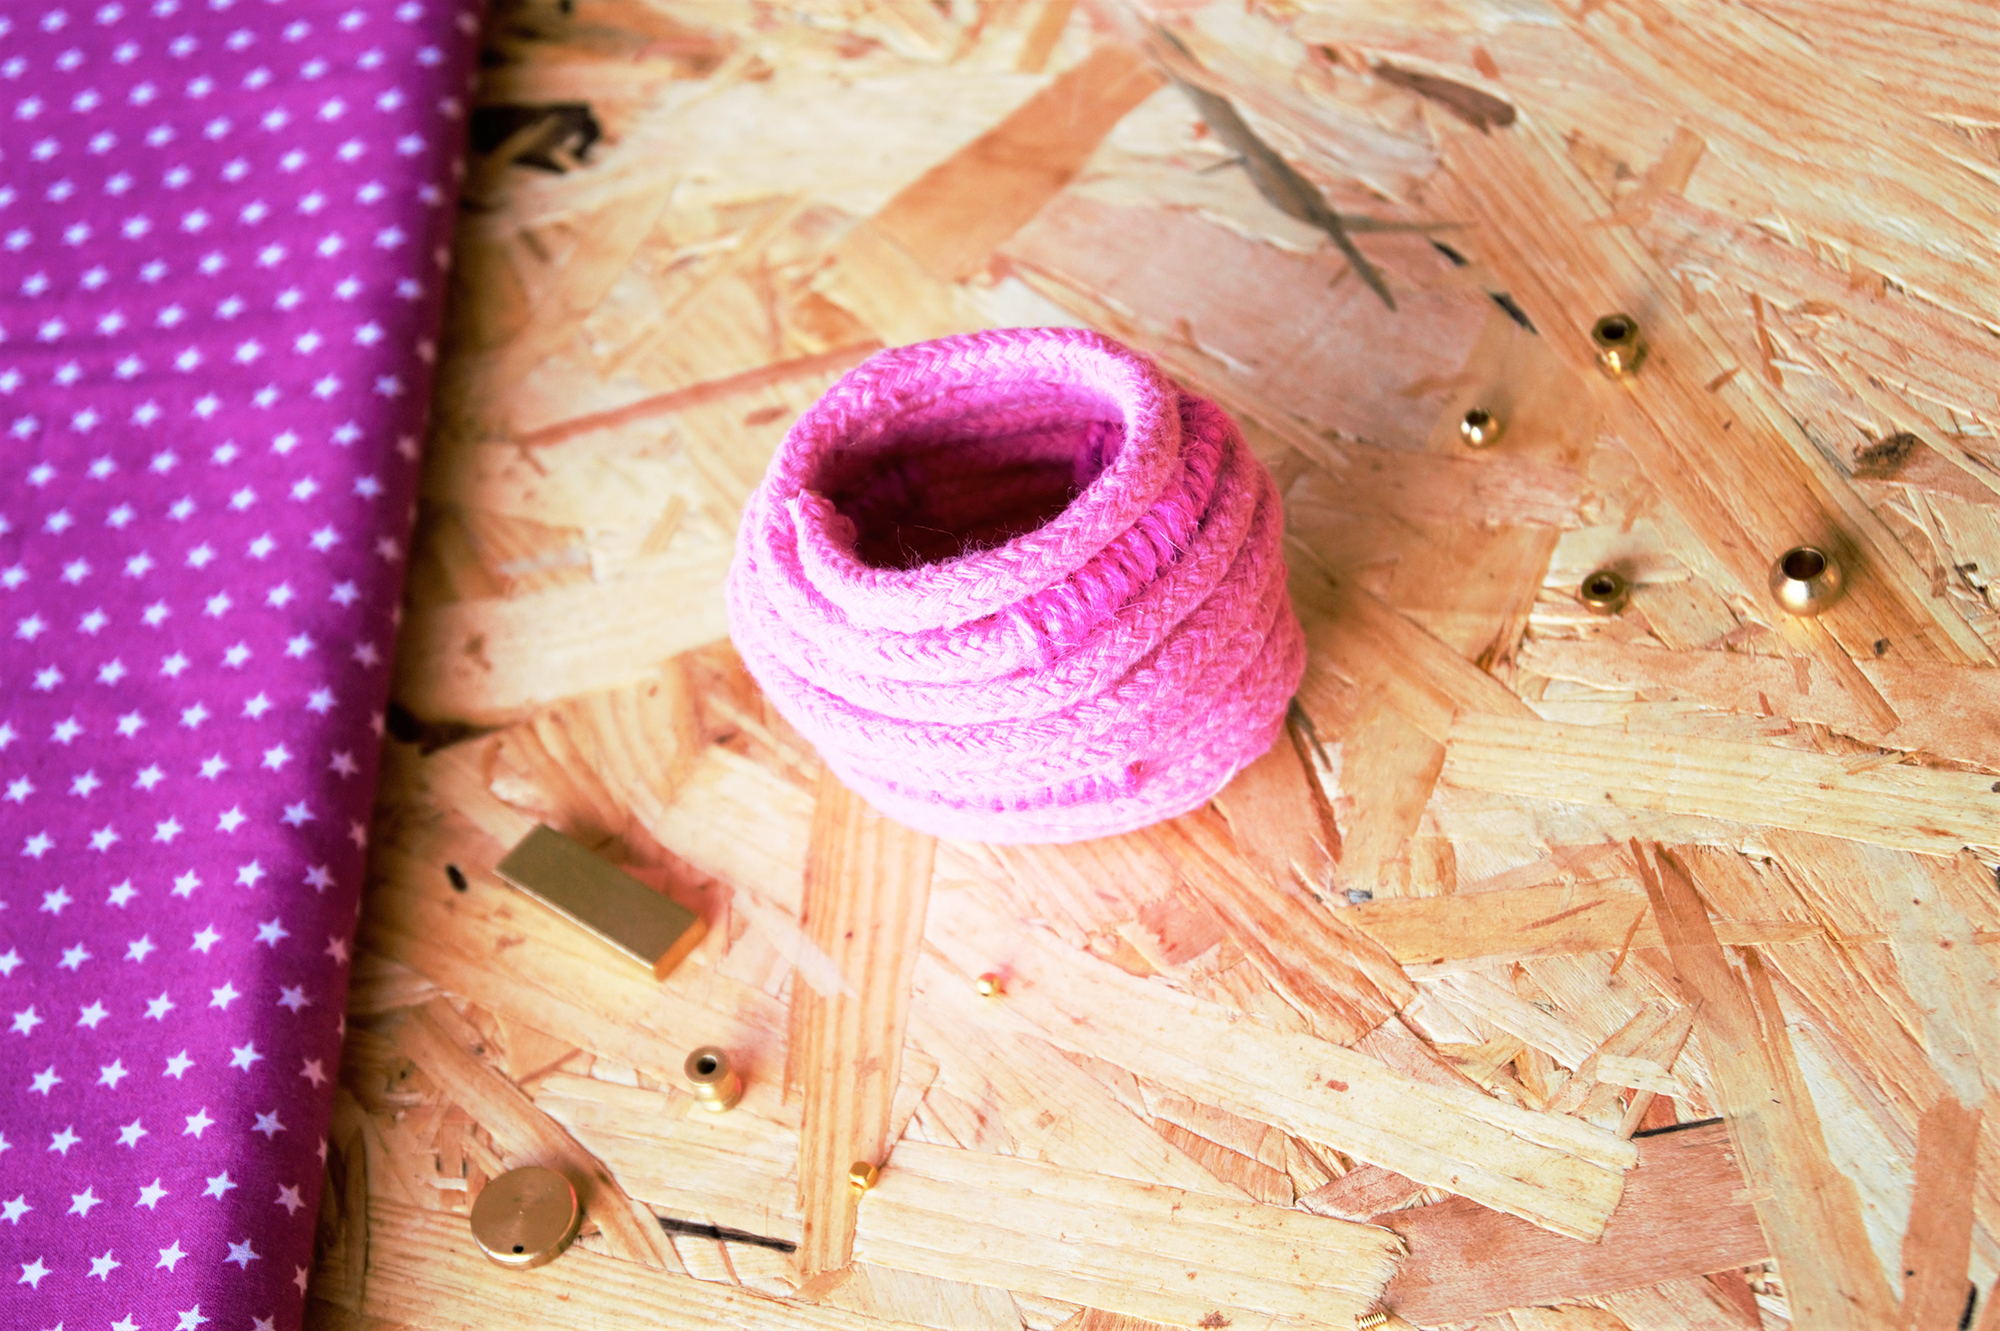 tuto panier rangement en corde sur le blog do it yourself Jeanne s'amuse